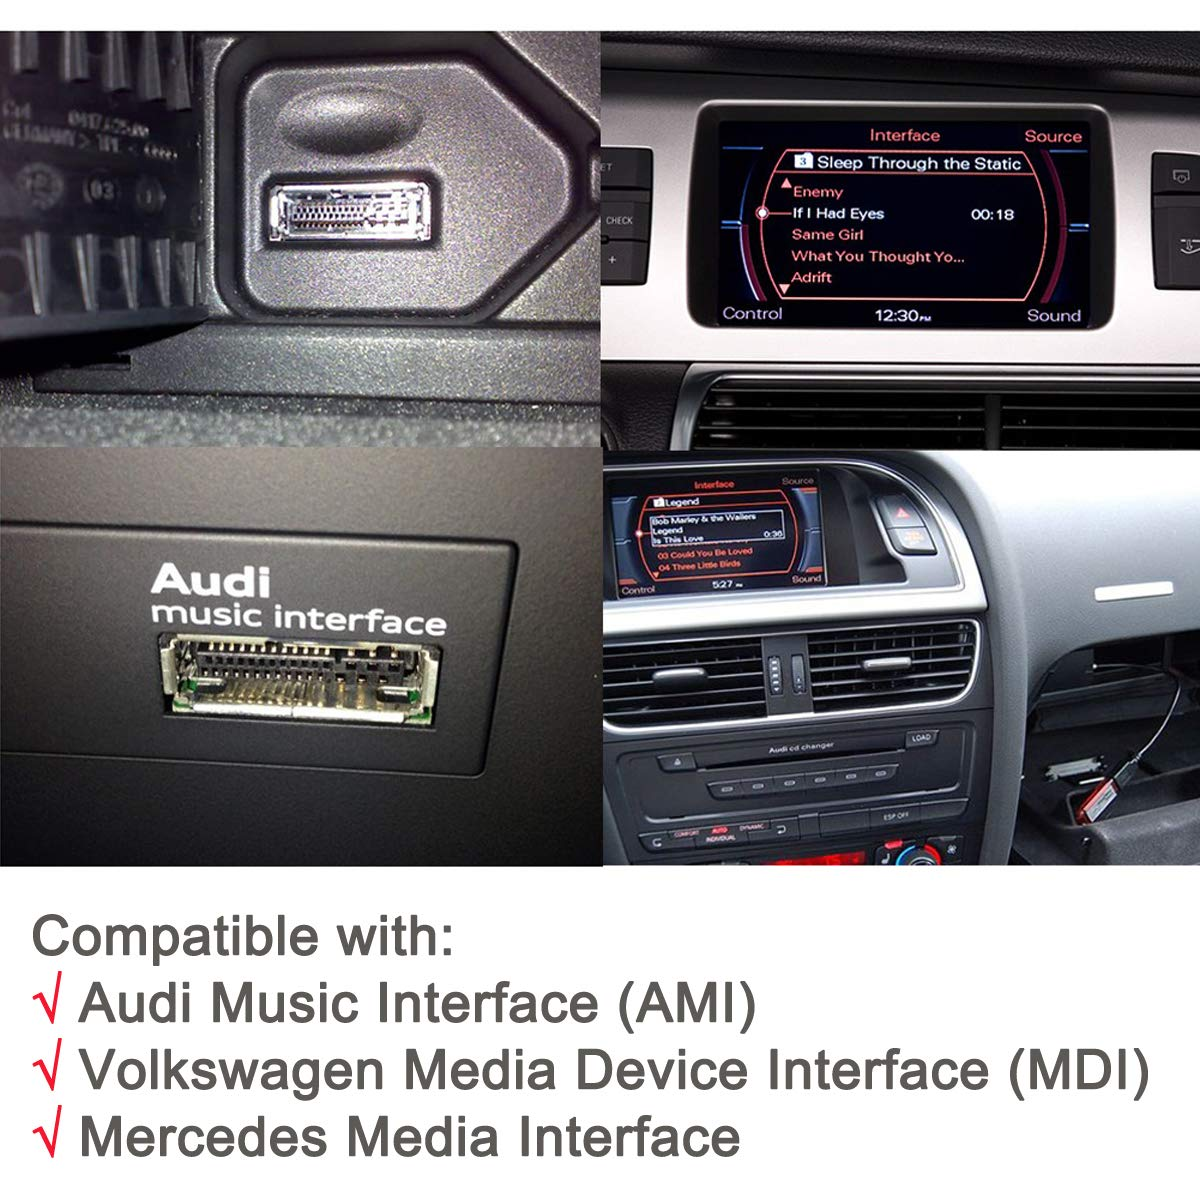 VW Mercedes CHELINK Bluetooth Car Kit AMI//MDI//MMI Music Interface Adapter for in Car iPod Integration fit for Audi